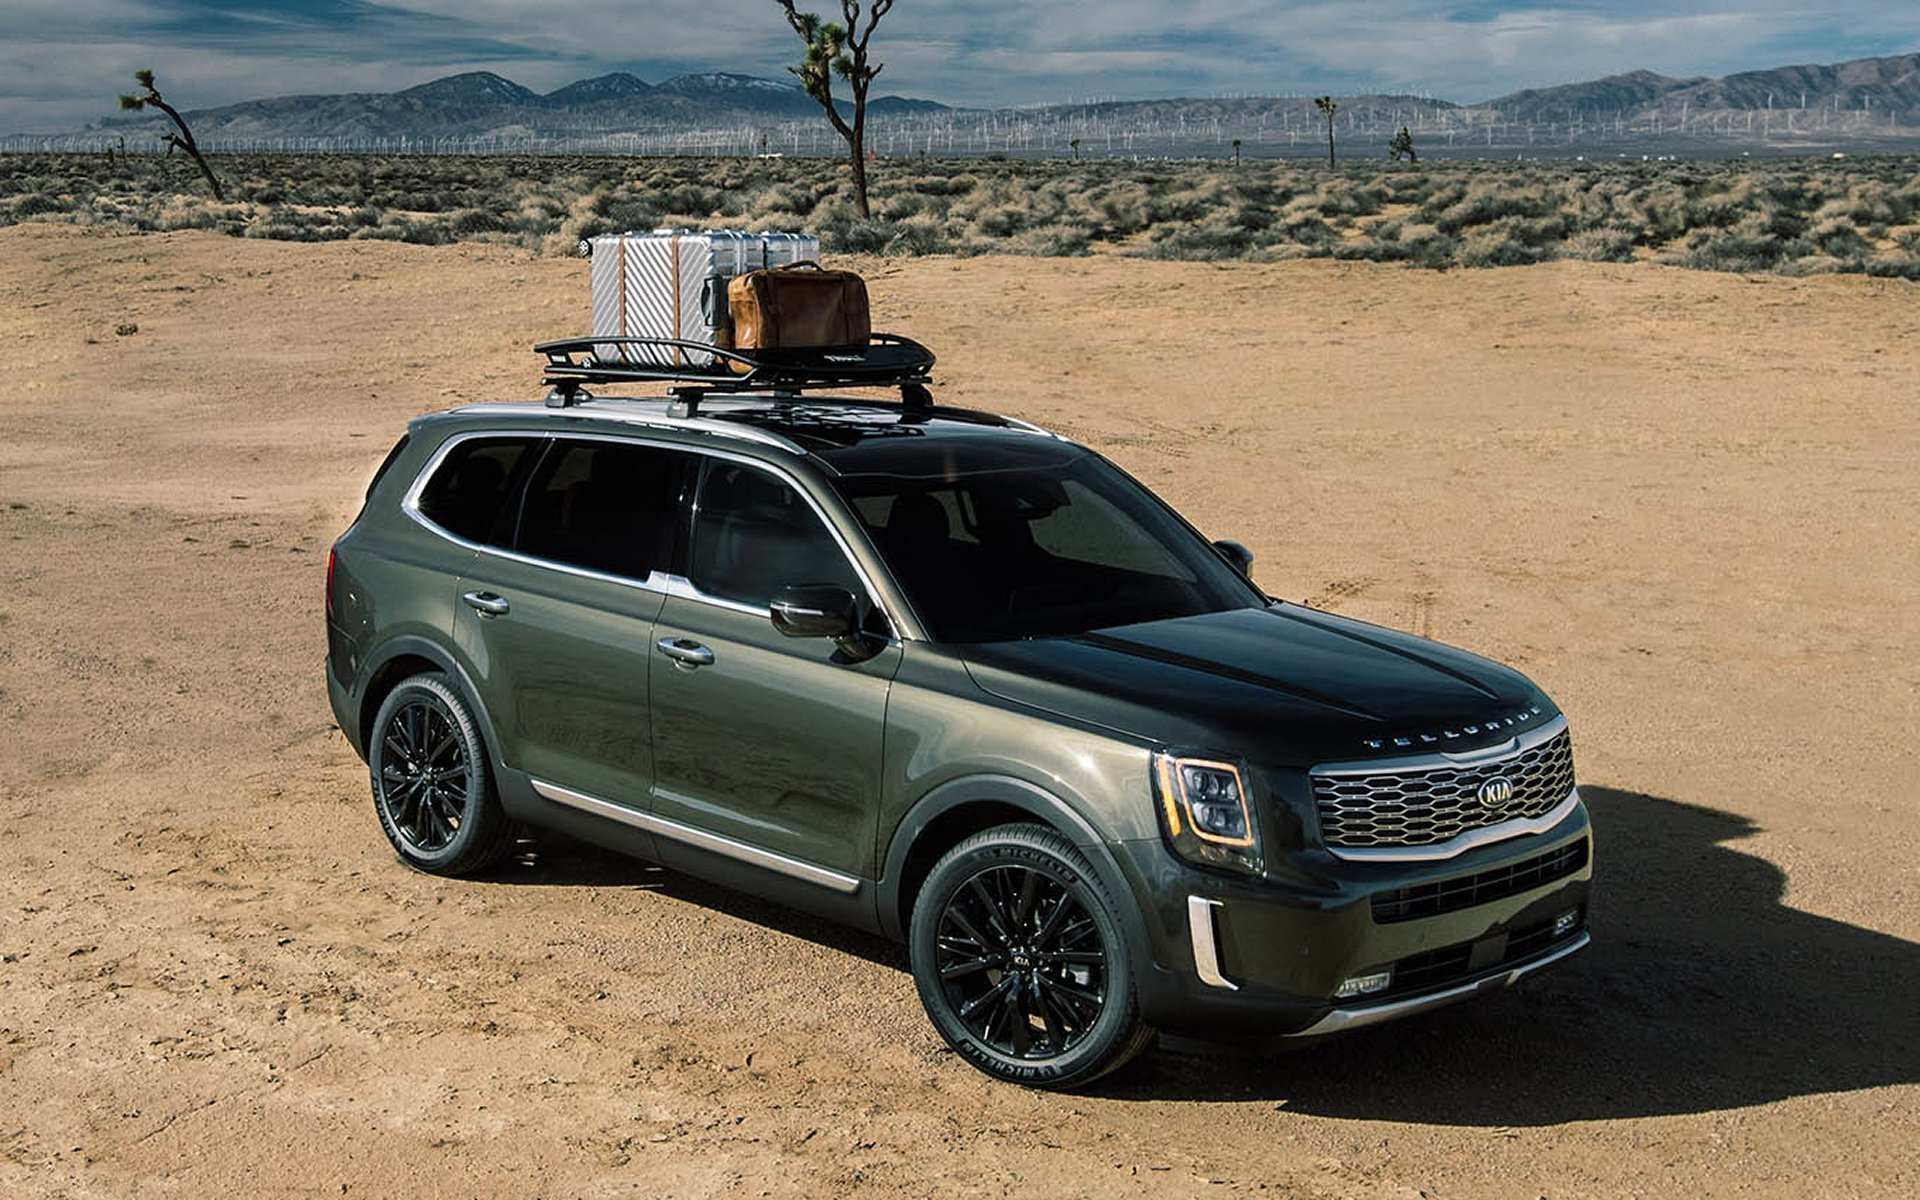 84 A Kia Telluride 2020 For Sale 2 Price And Release Date